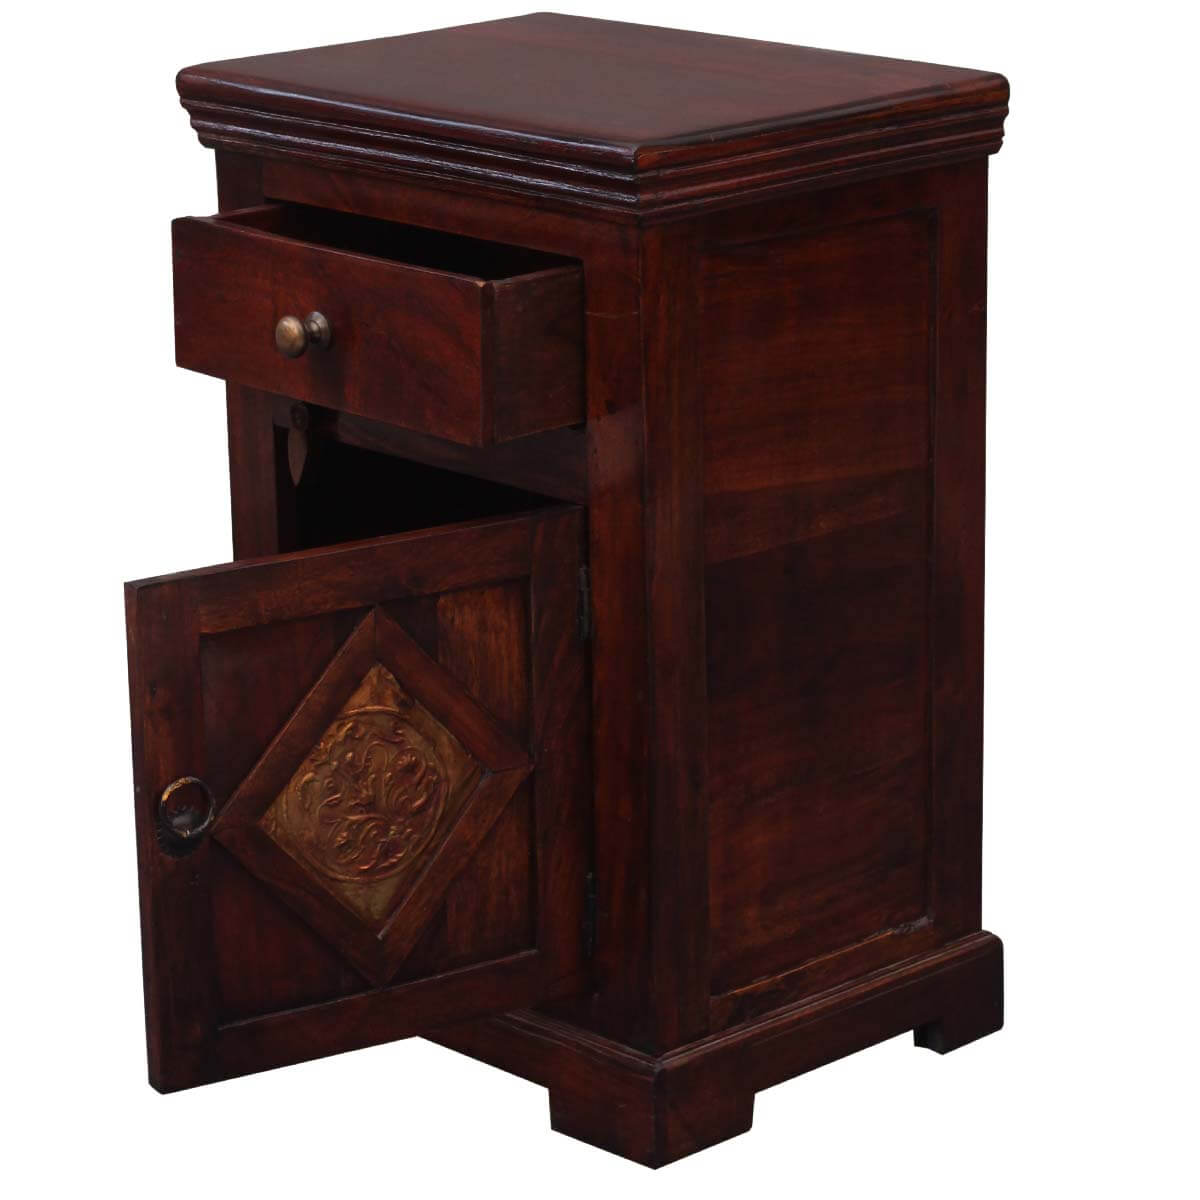 Medium handcrafted rustic solid wood bedside nightstand - Bedside table ...